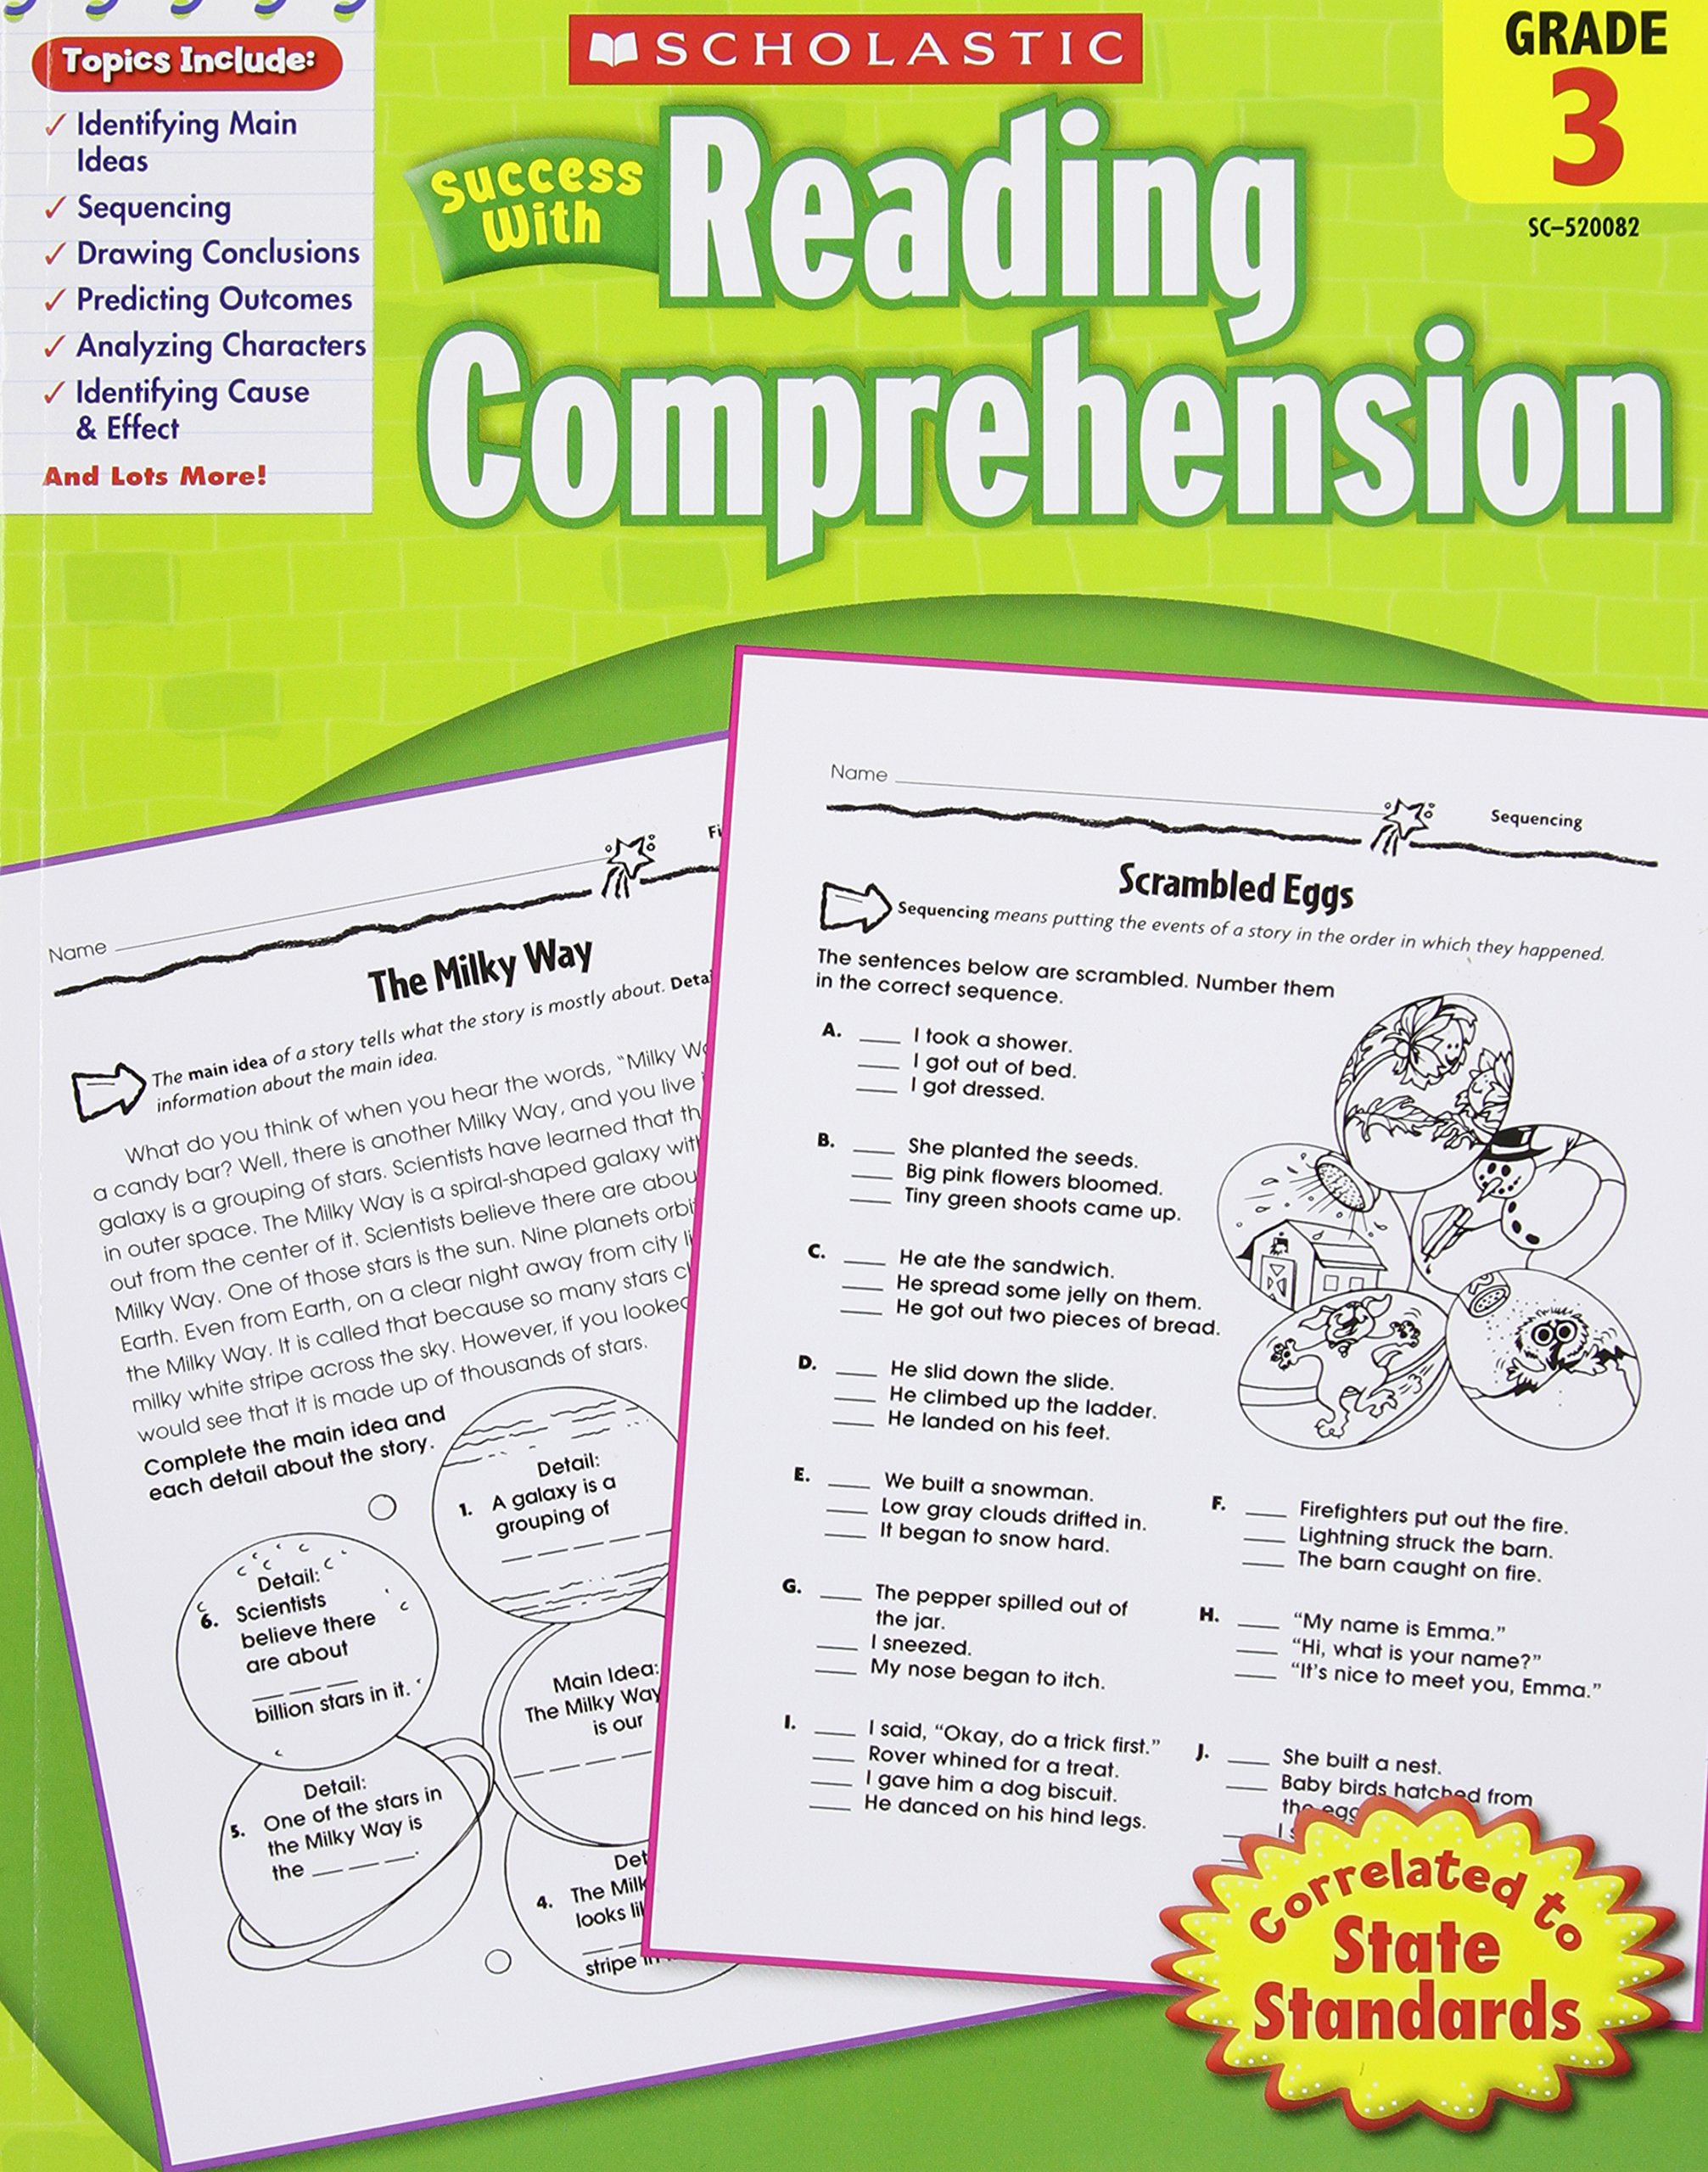 Worksheet Comprehension Passages For Grade 3 With Questions And Answers buy scholastic success with reading comprehension grade 3 book online at low prices in india co